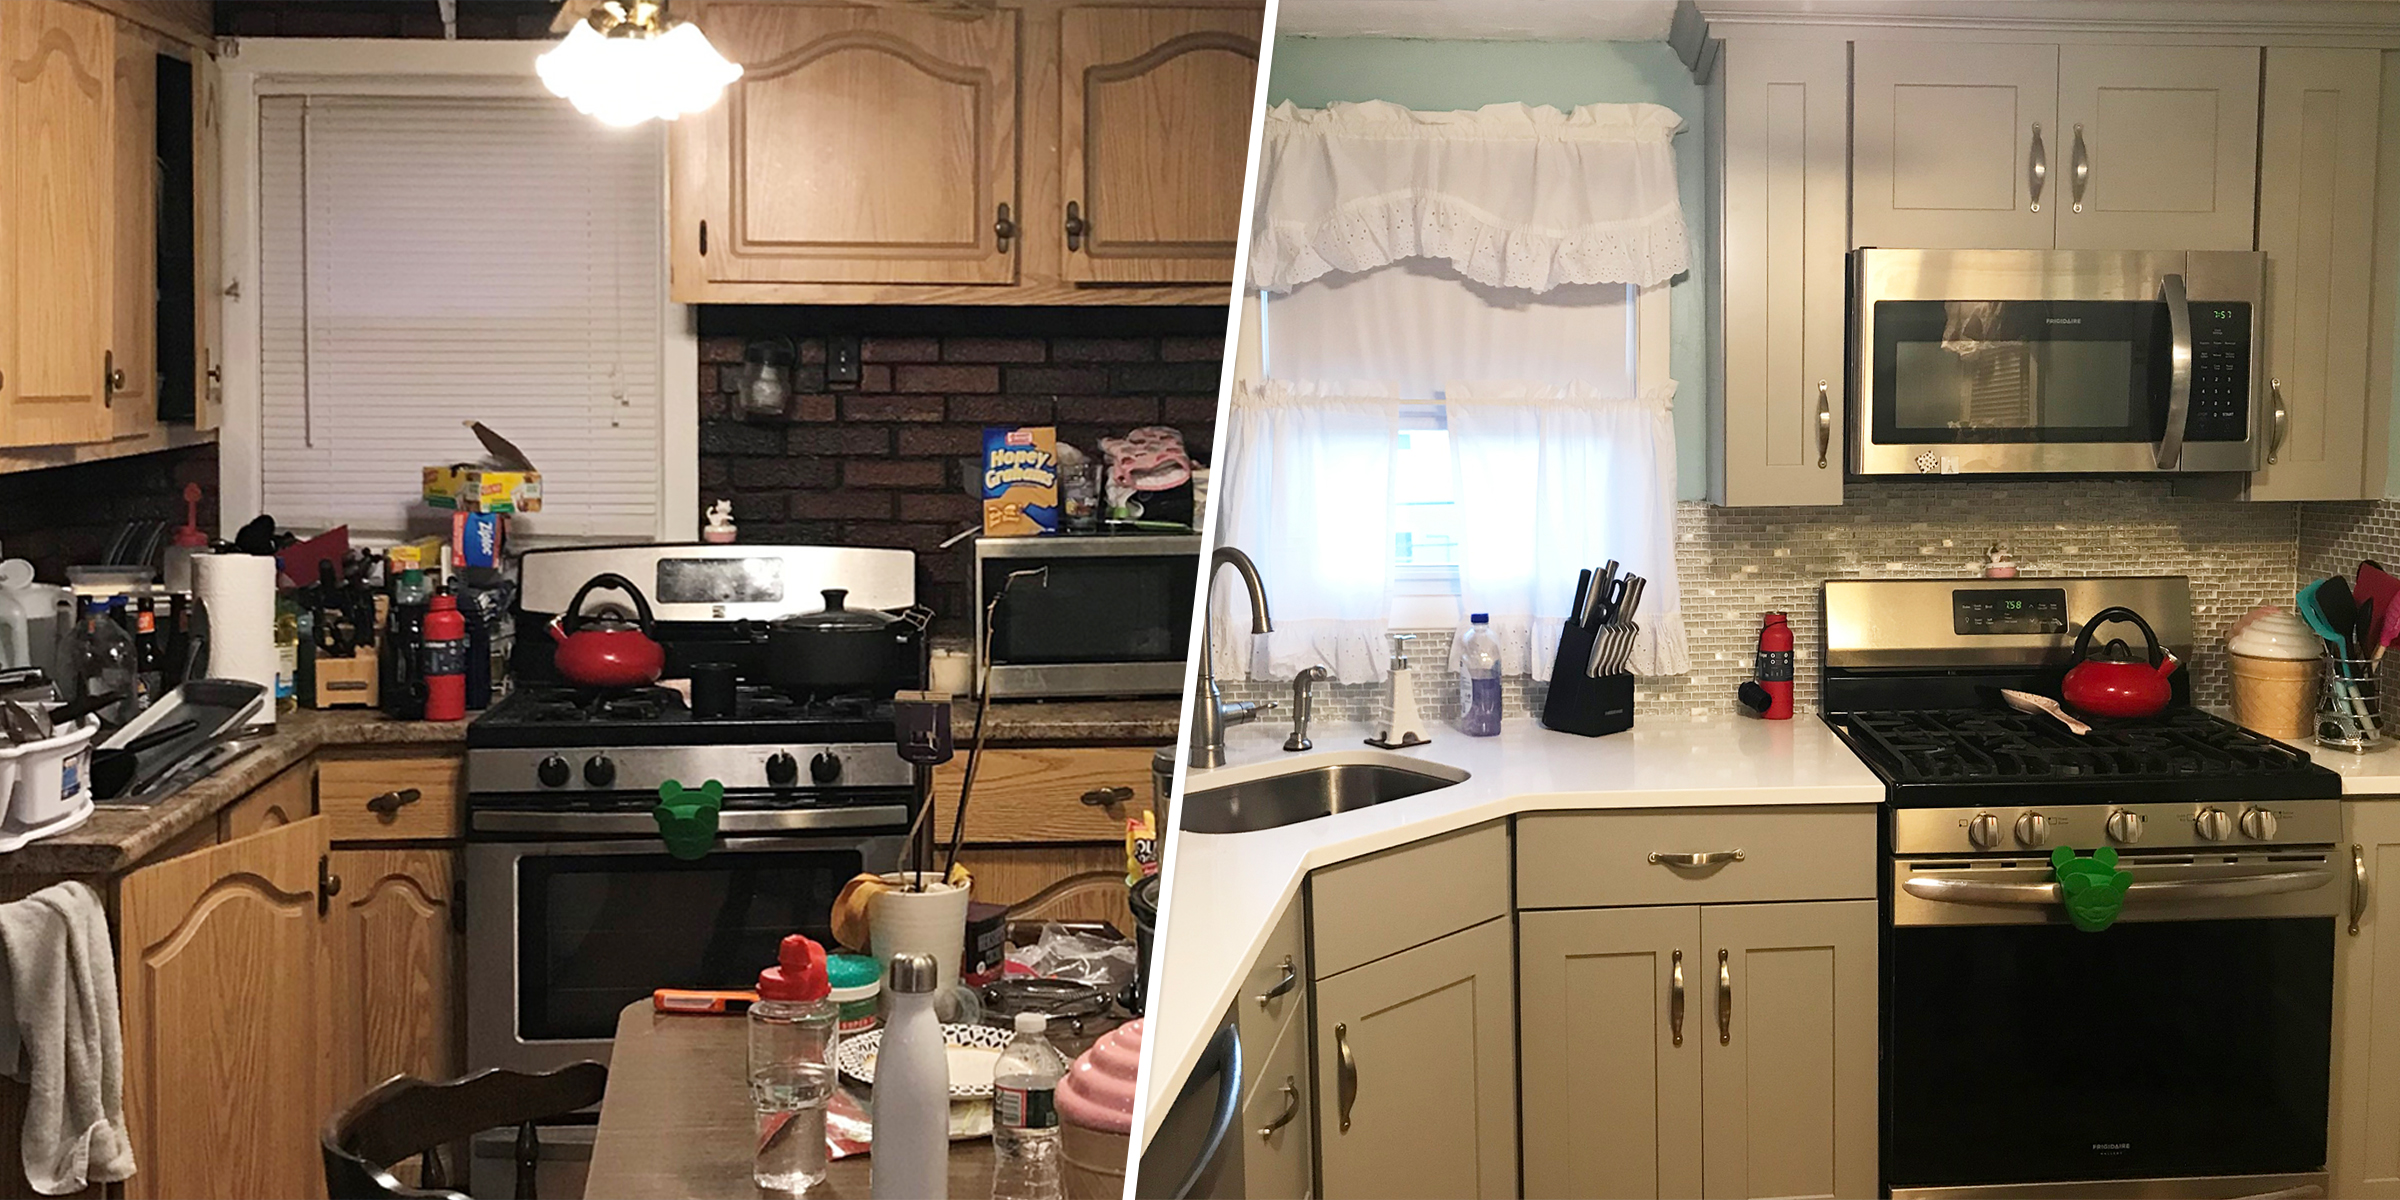 4 Financial Lessons I Learned While Renovating My Kitchen